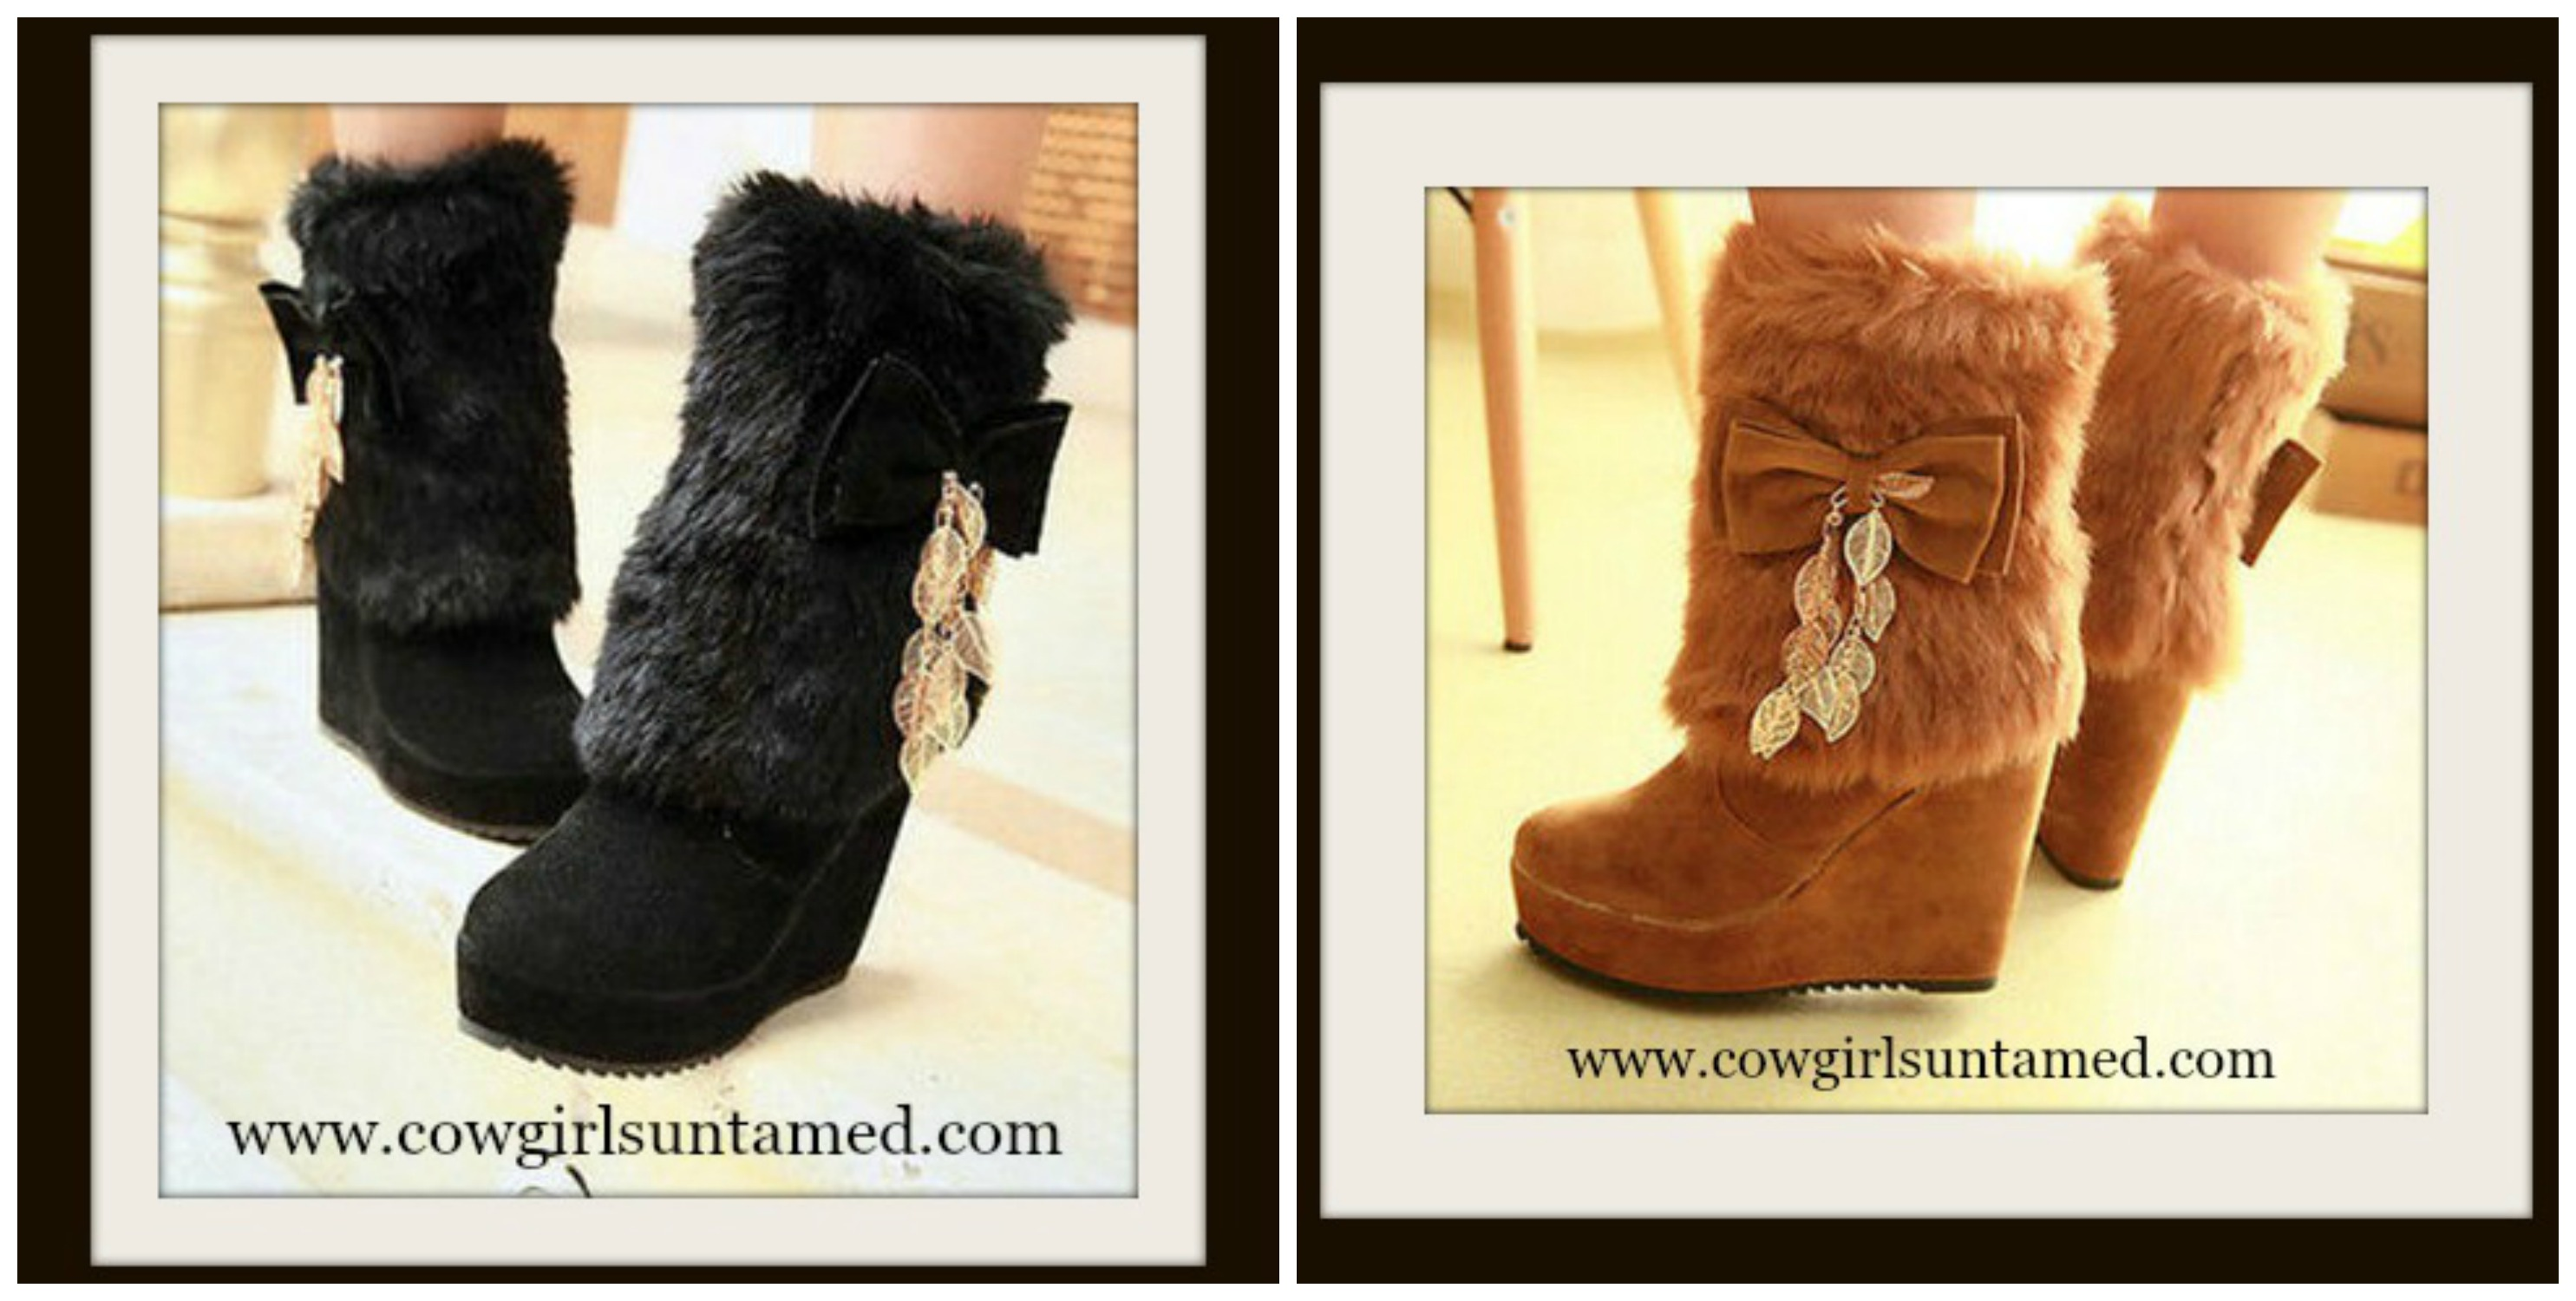 COWGIRL ATTITUDE BOOTS Fur, Bow & Chain Heel Winter Western Boots